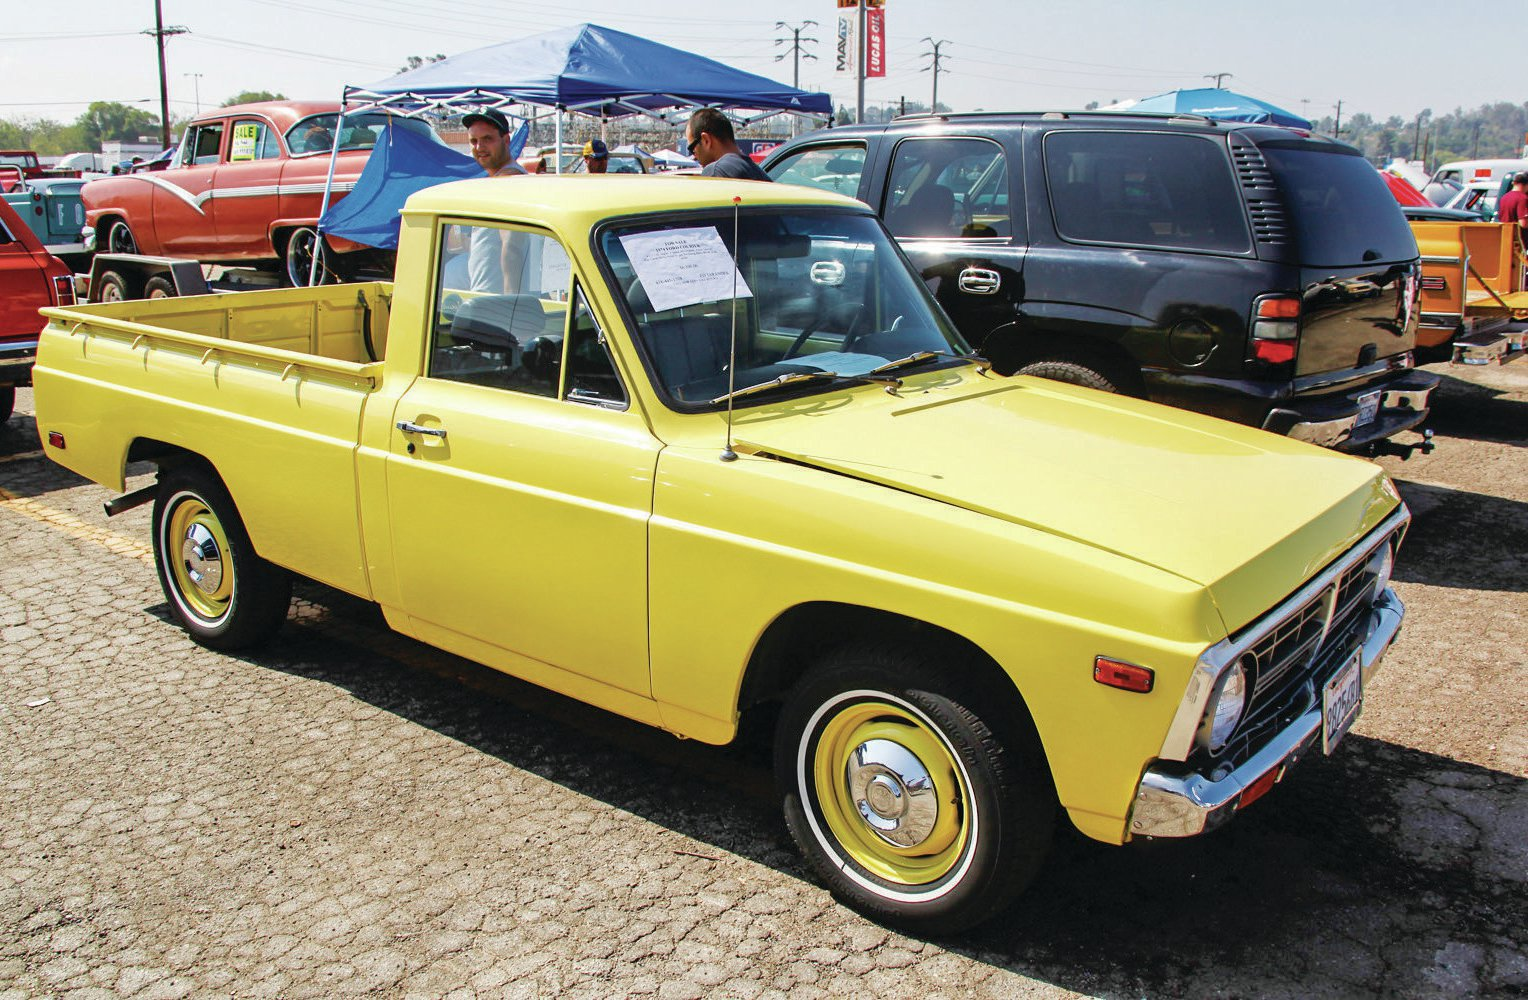 A Ford Courier was a Mazda with a grille designed to reflect the look of a 1970s fullsize F-150. A hot rodder turned up his nose when they were new and cost $3,000. Today, he'll pay $6,500 for this prime example.